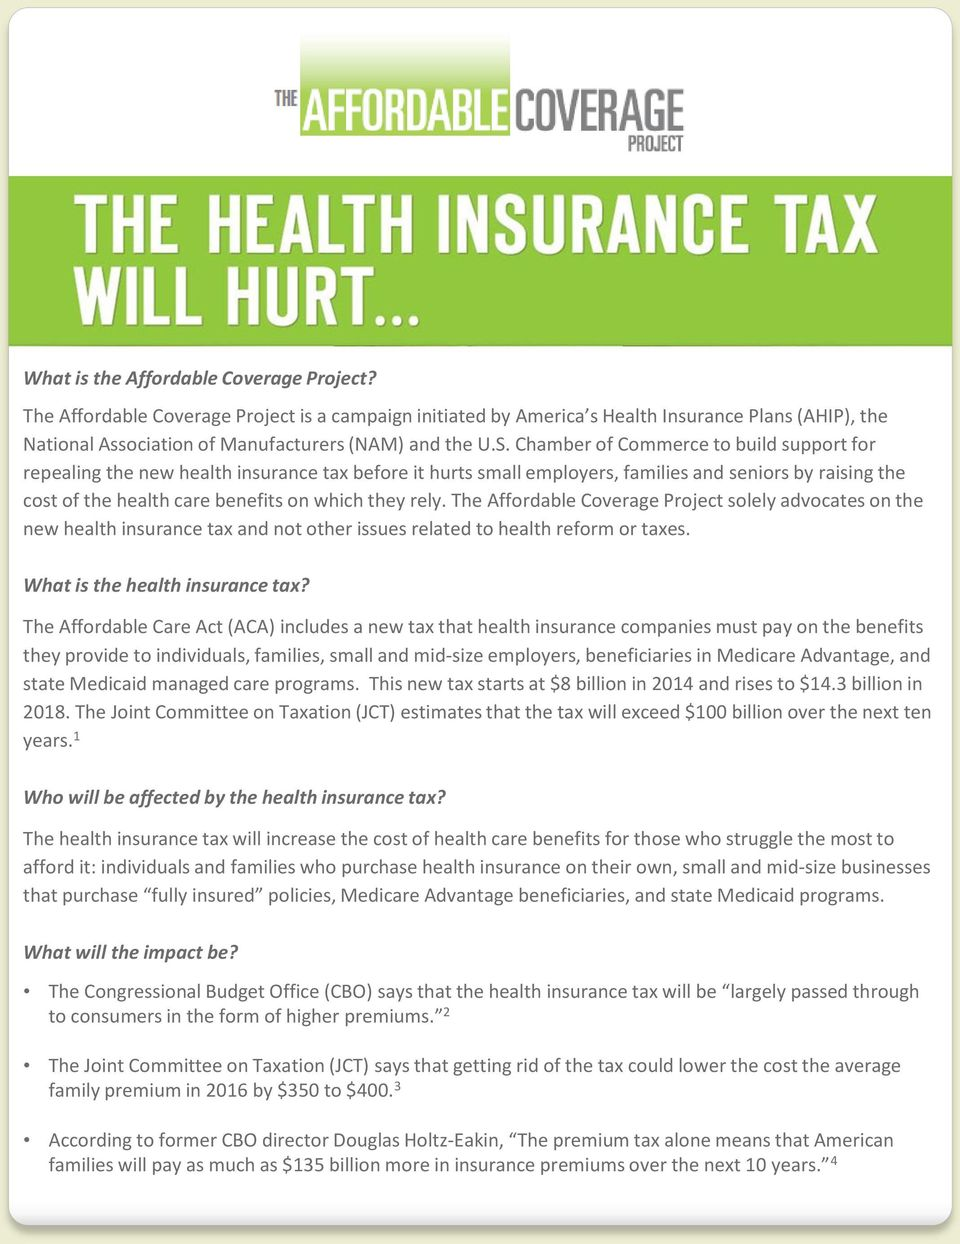 rely. The Affordable Coverage Project solely advocates on the new health insurance tax and not other issues related to health reform or taxes. What is the health insurance tax?